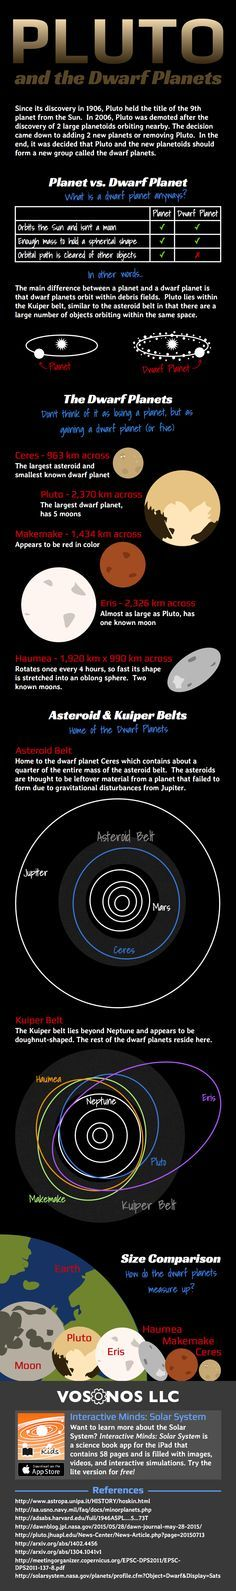 Learn about Pluto and the other dwarf planets: Ceres, Haumea, Makemake, and Eris!